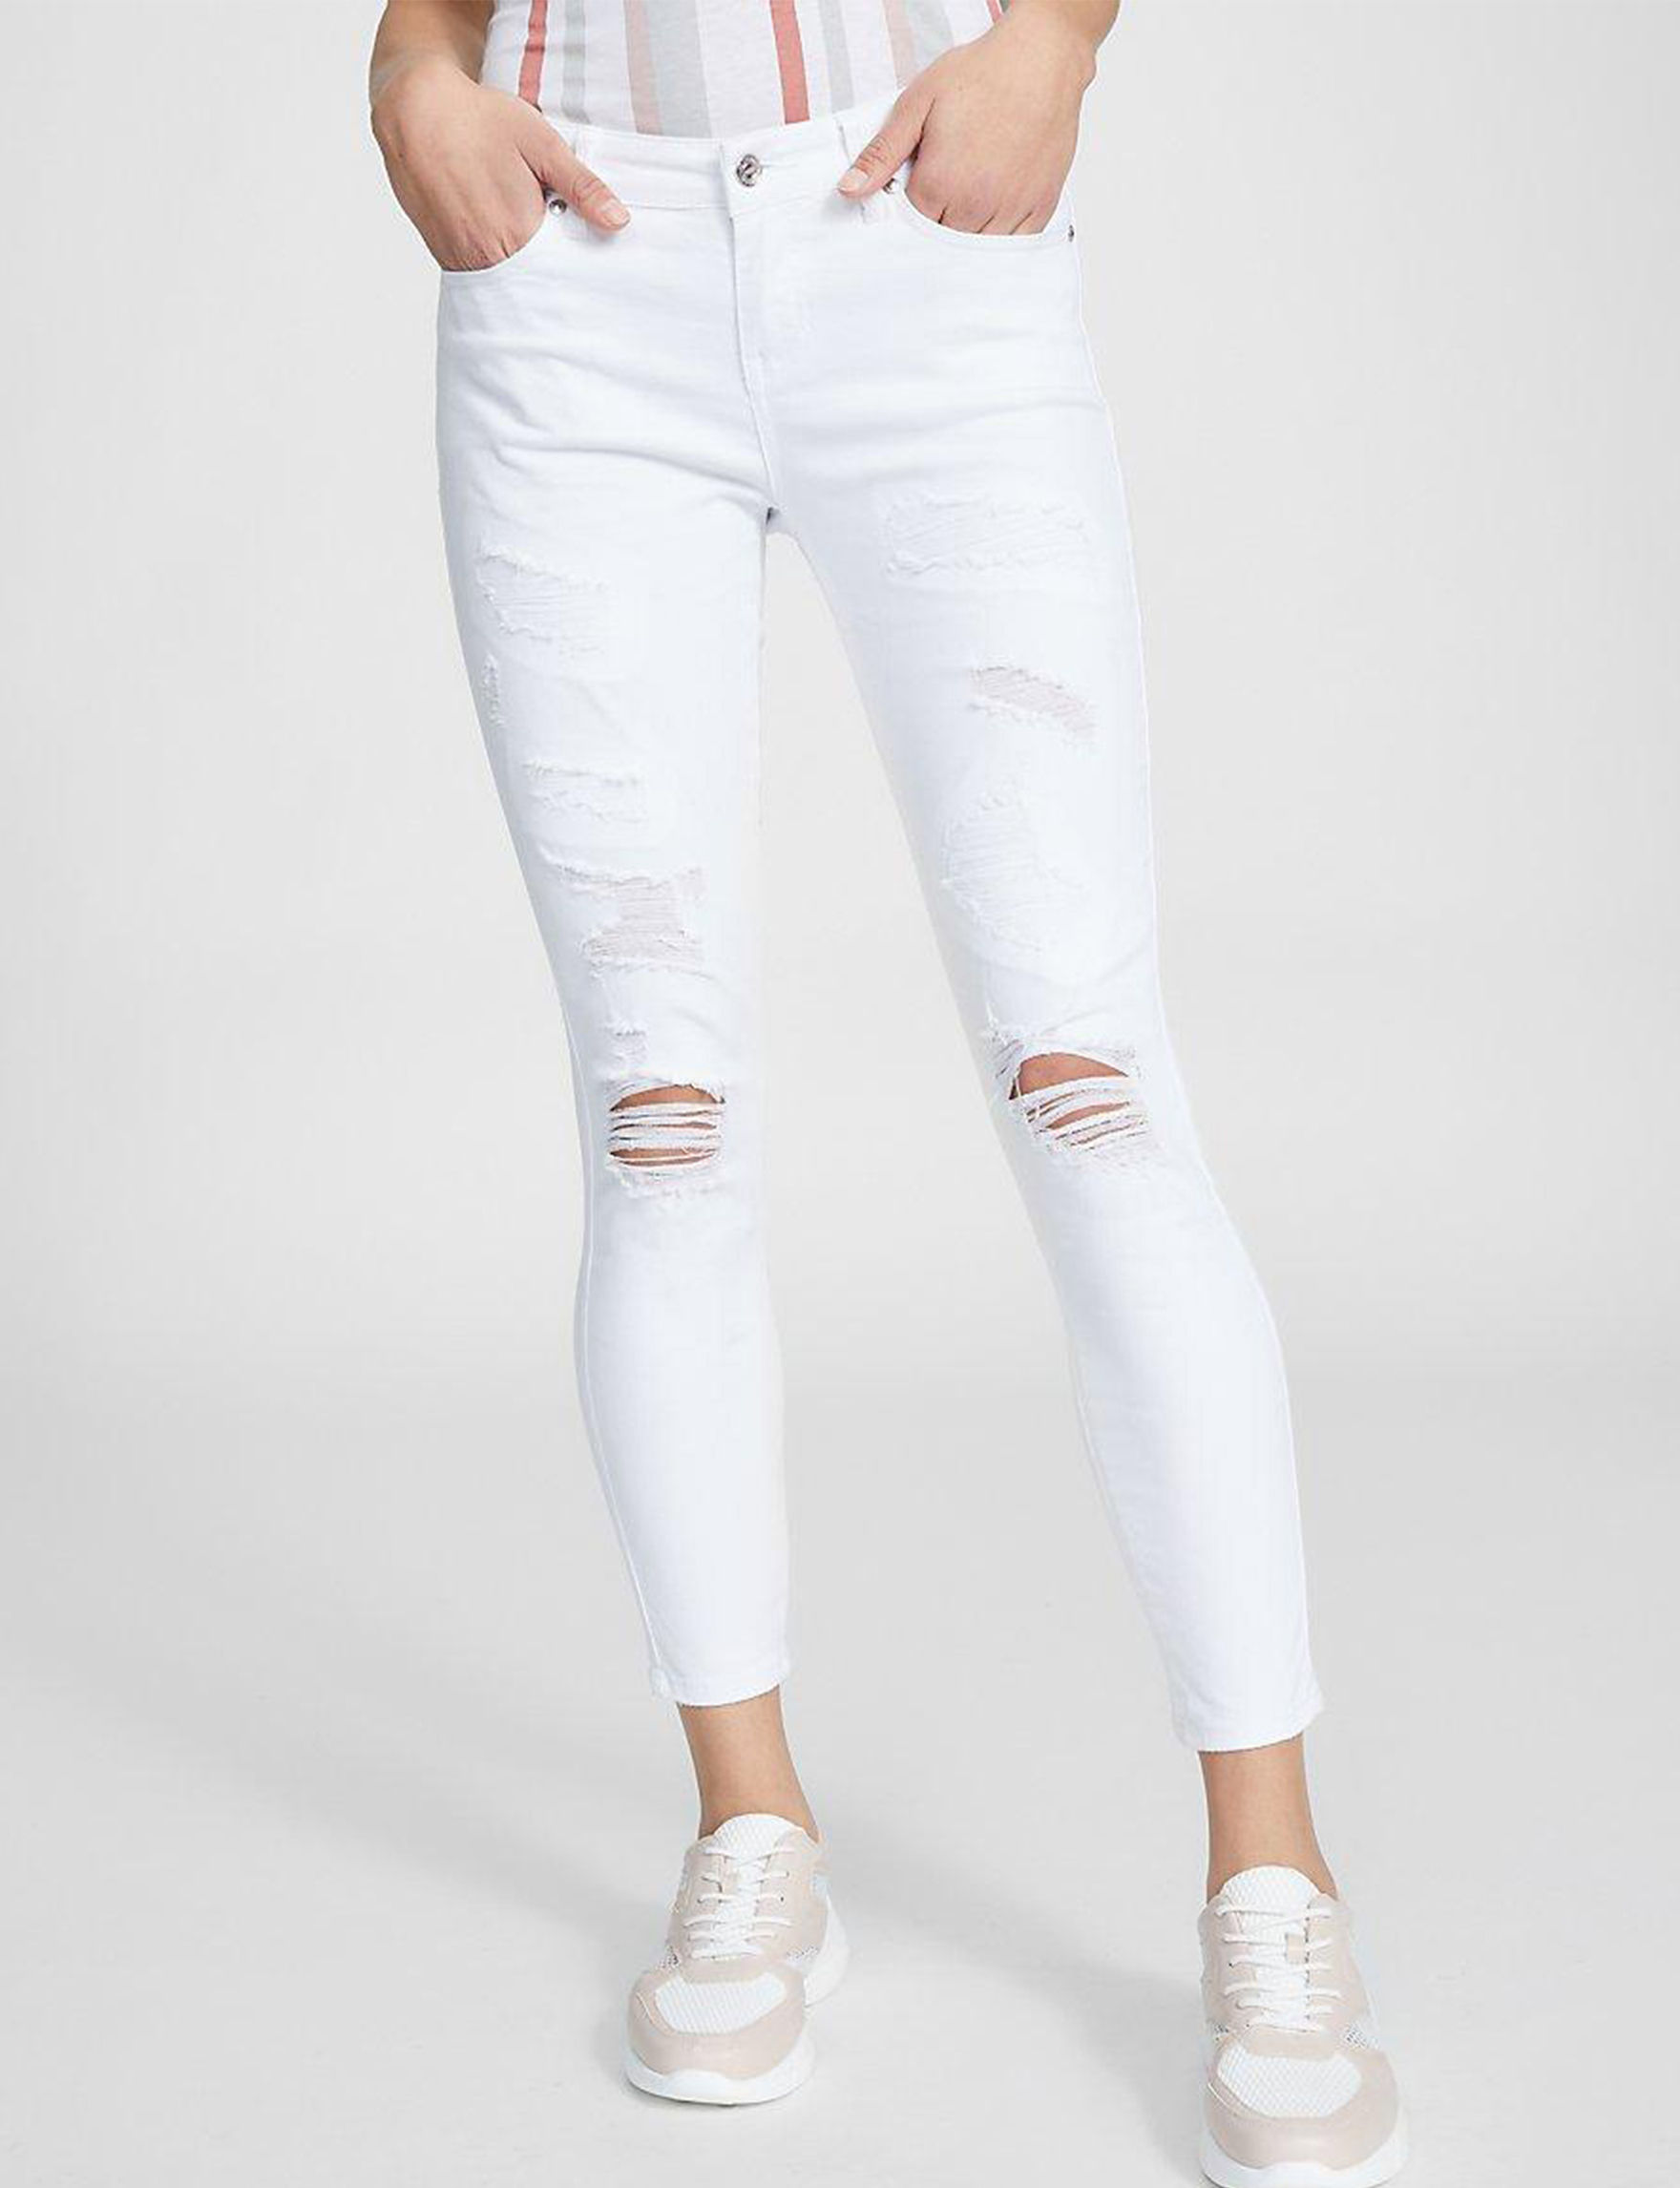 G by Guess White Skinny